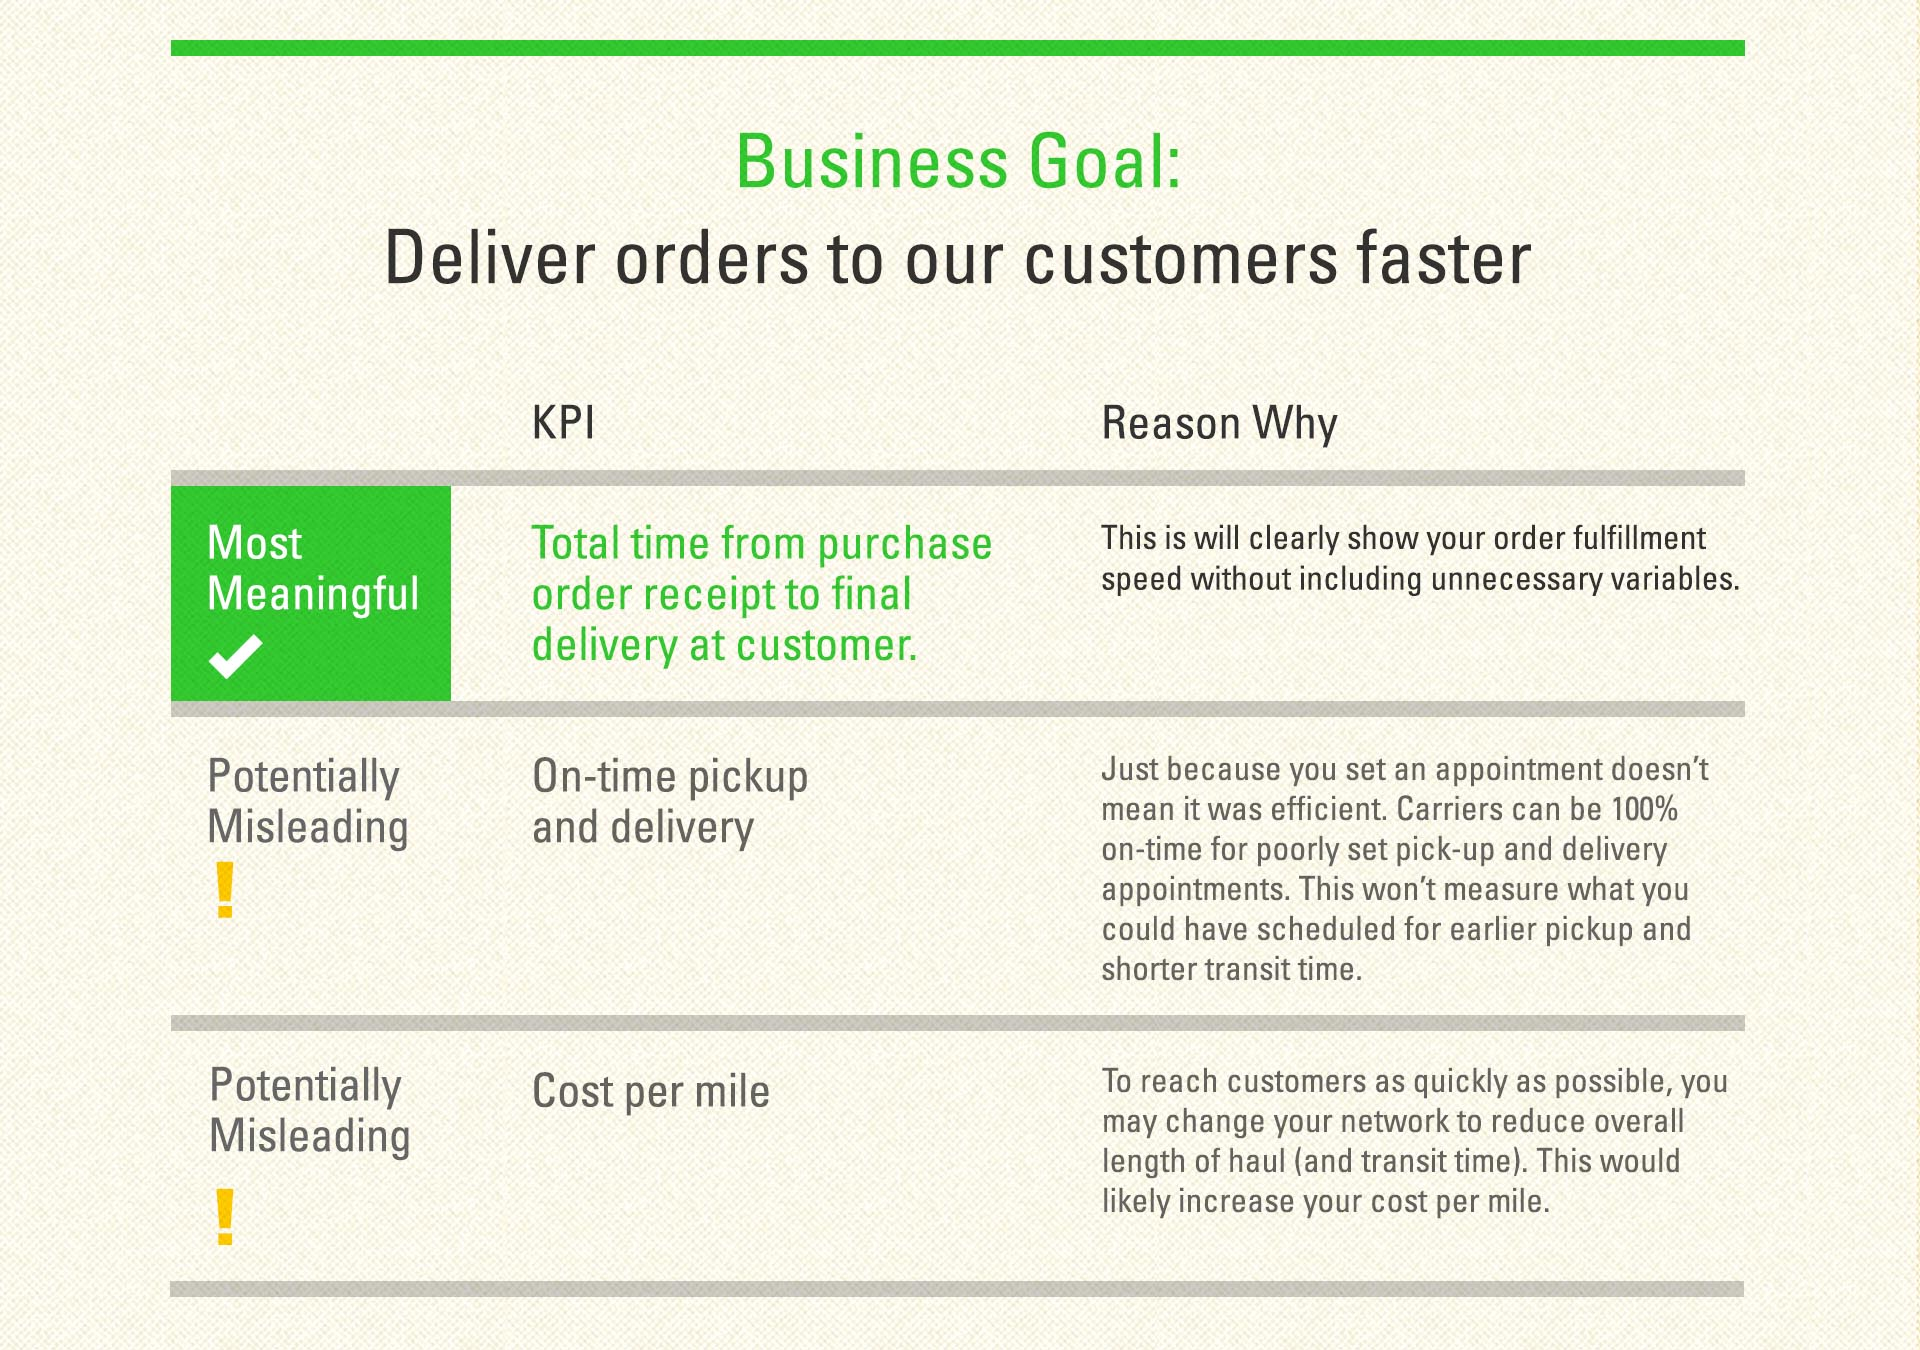 Business Goal Deliver orders to our customers faster graphic